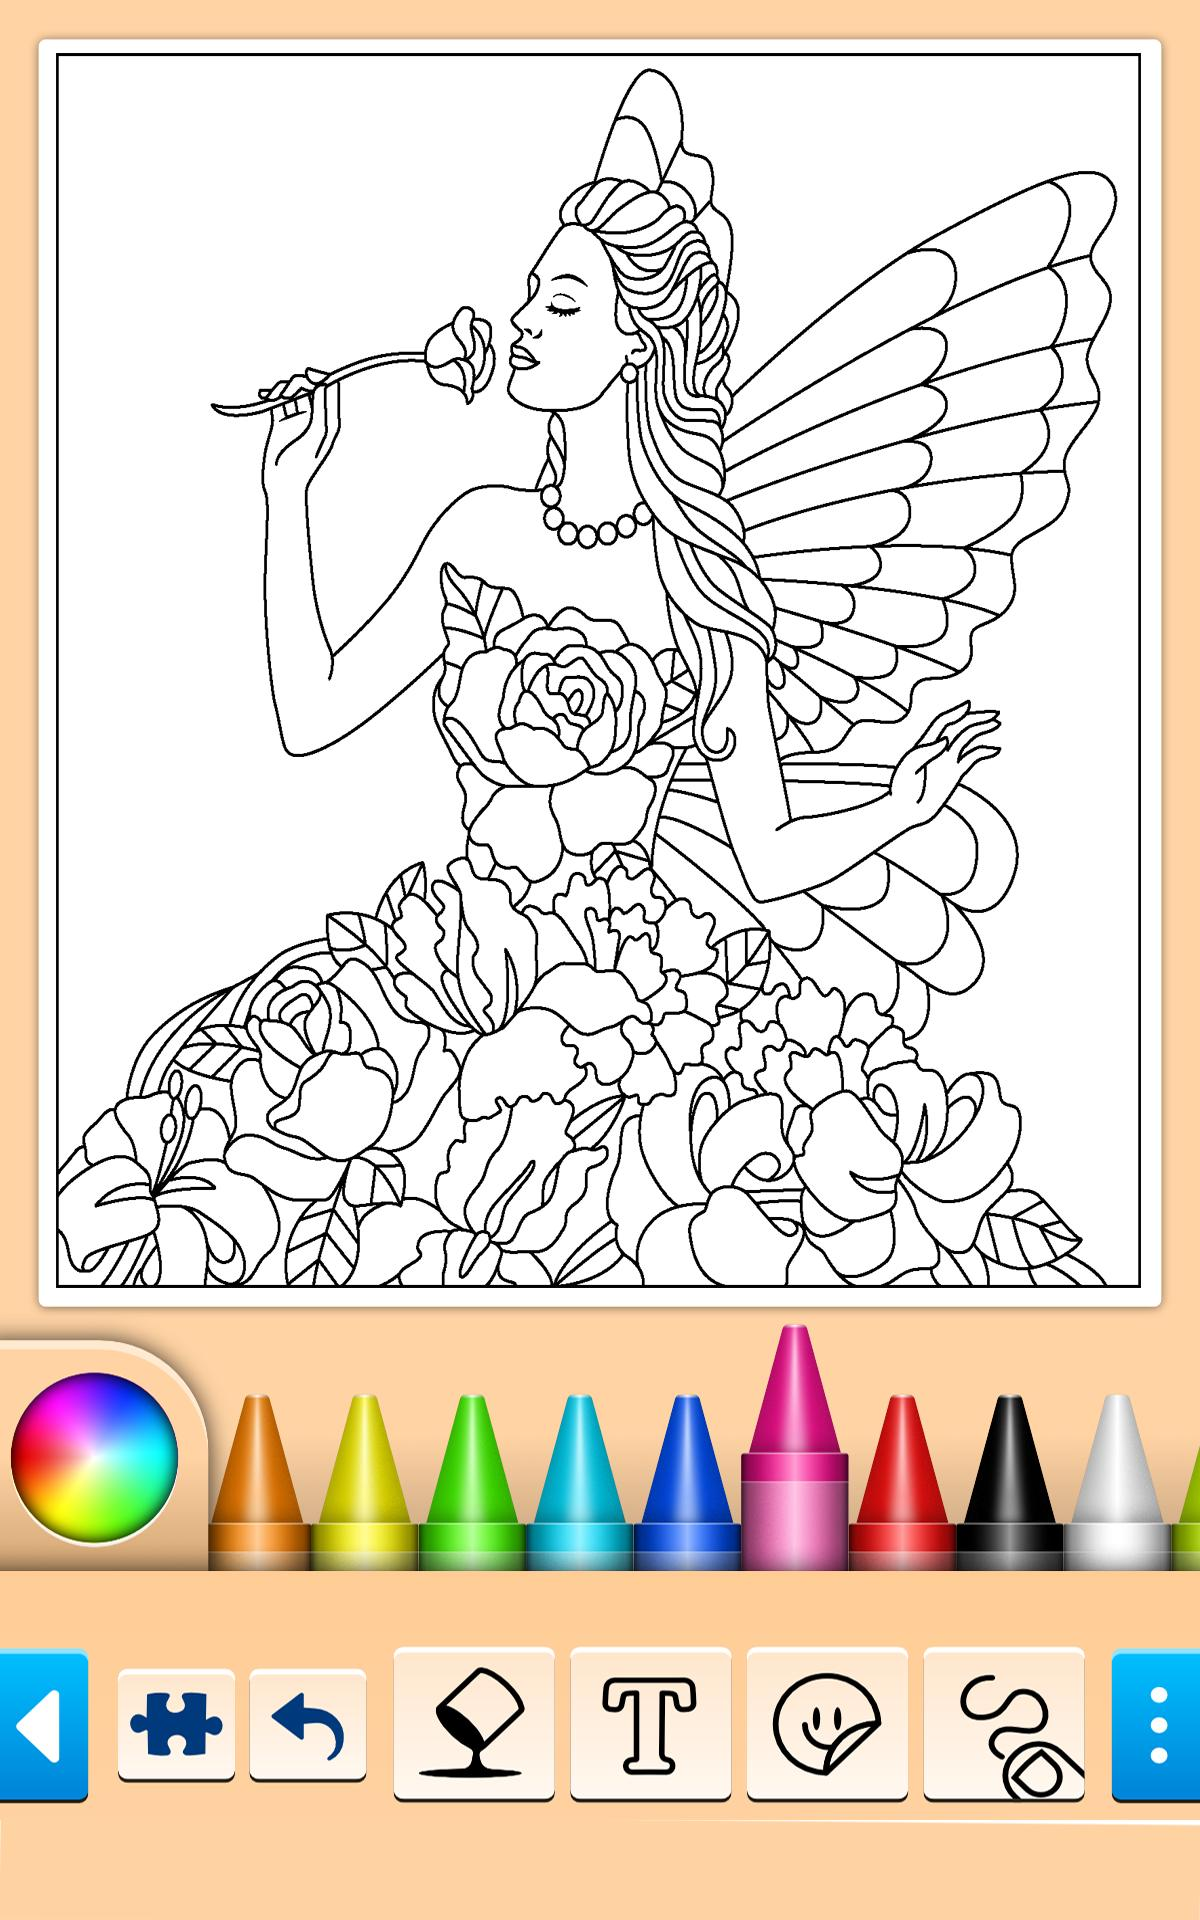 Princess Coloring Game for Android - APK Download